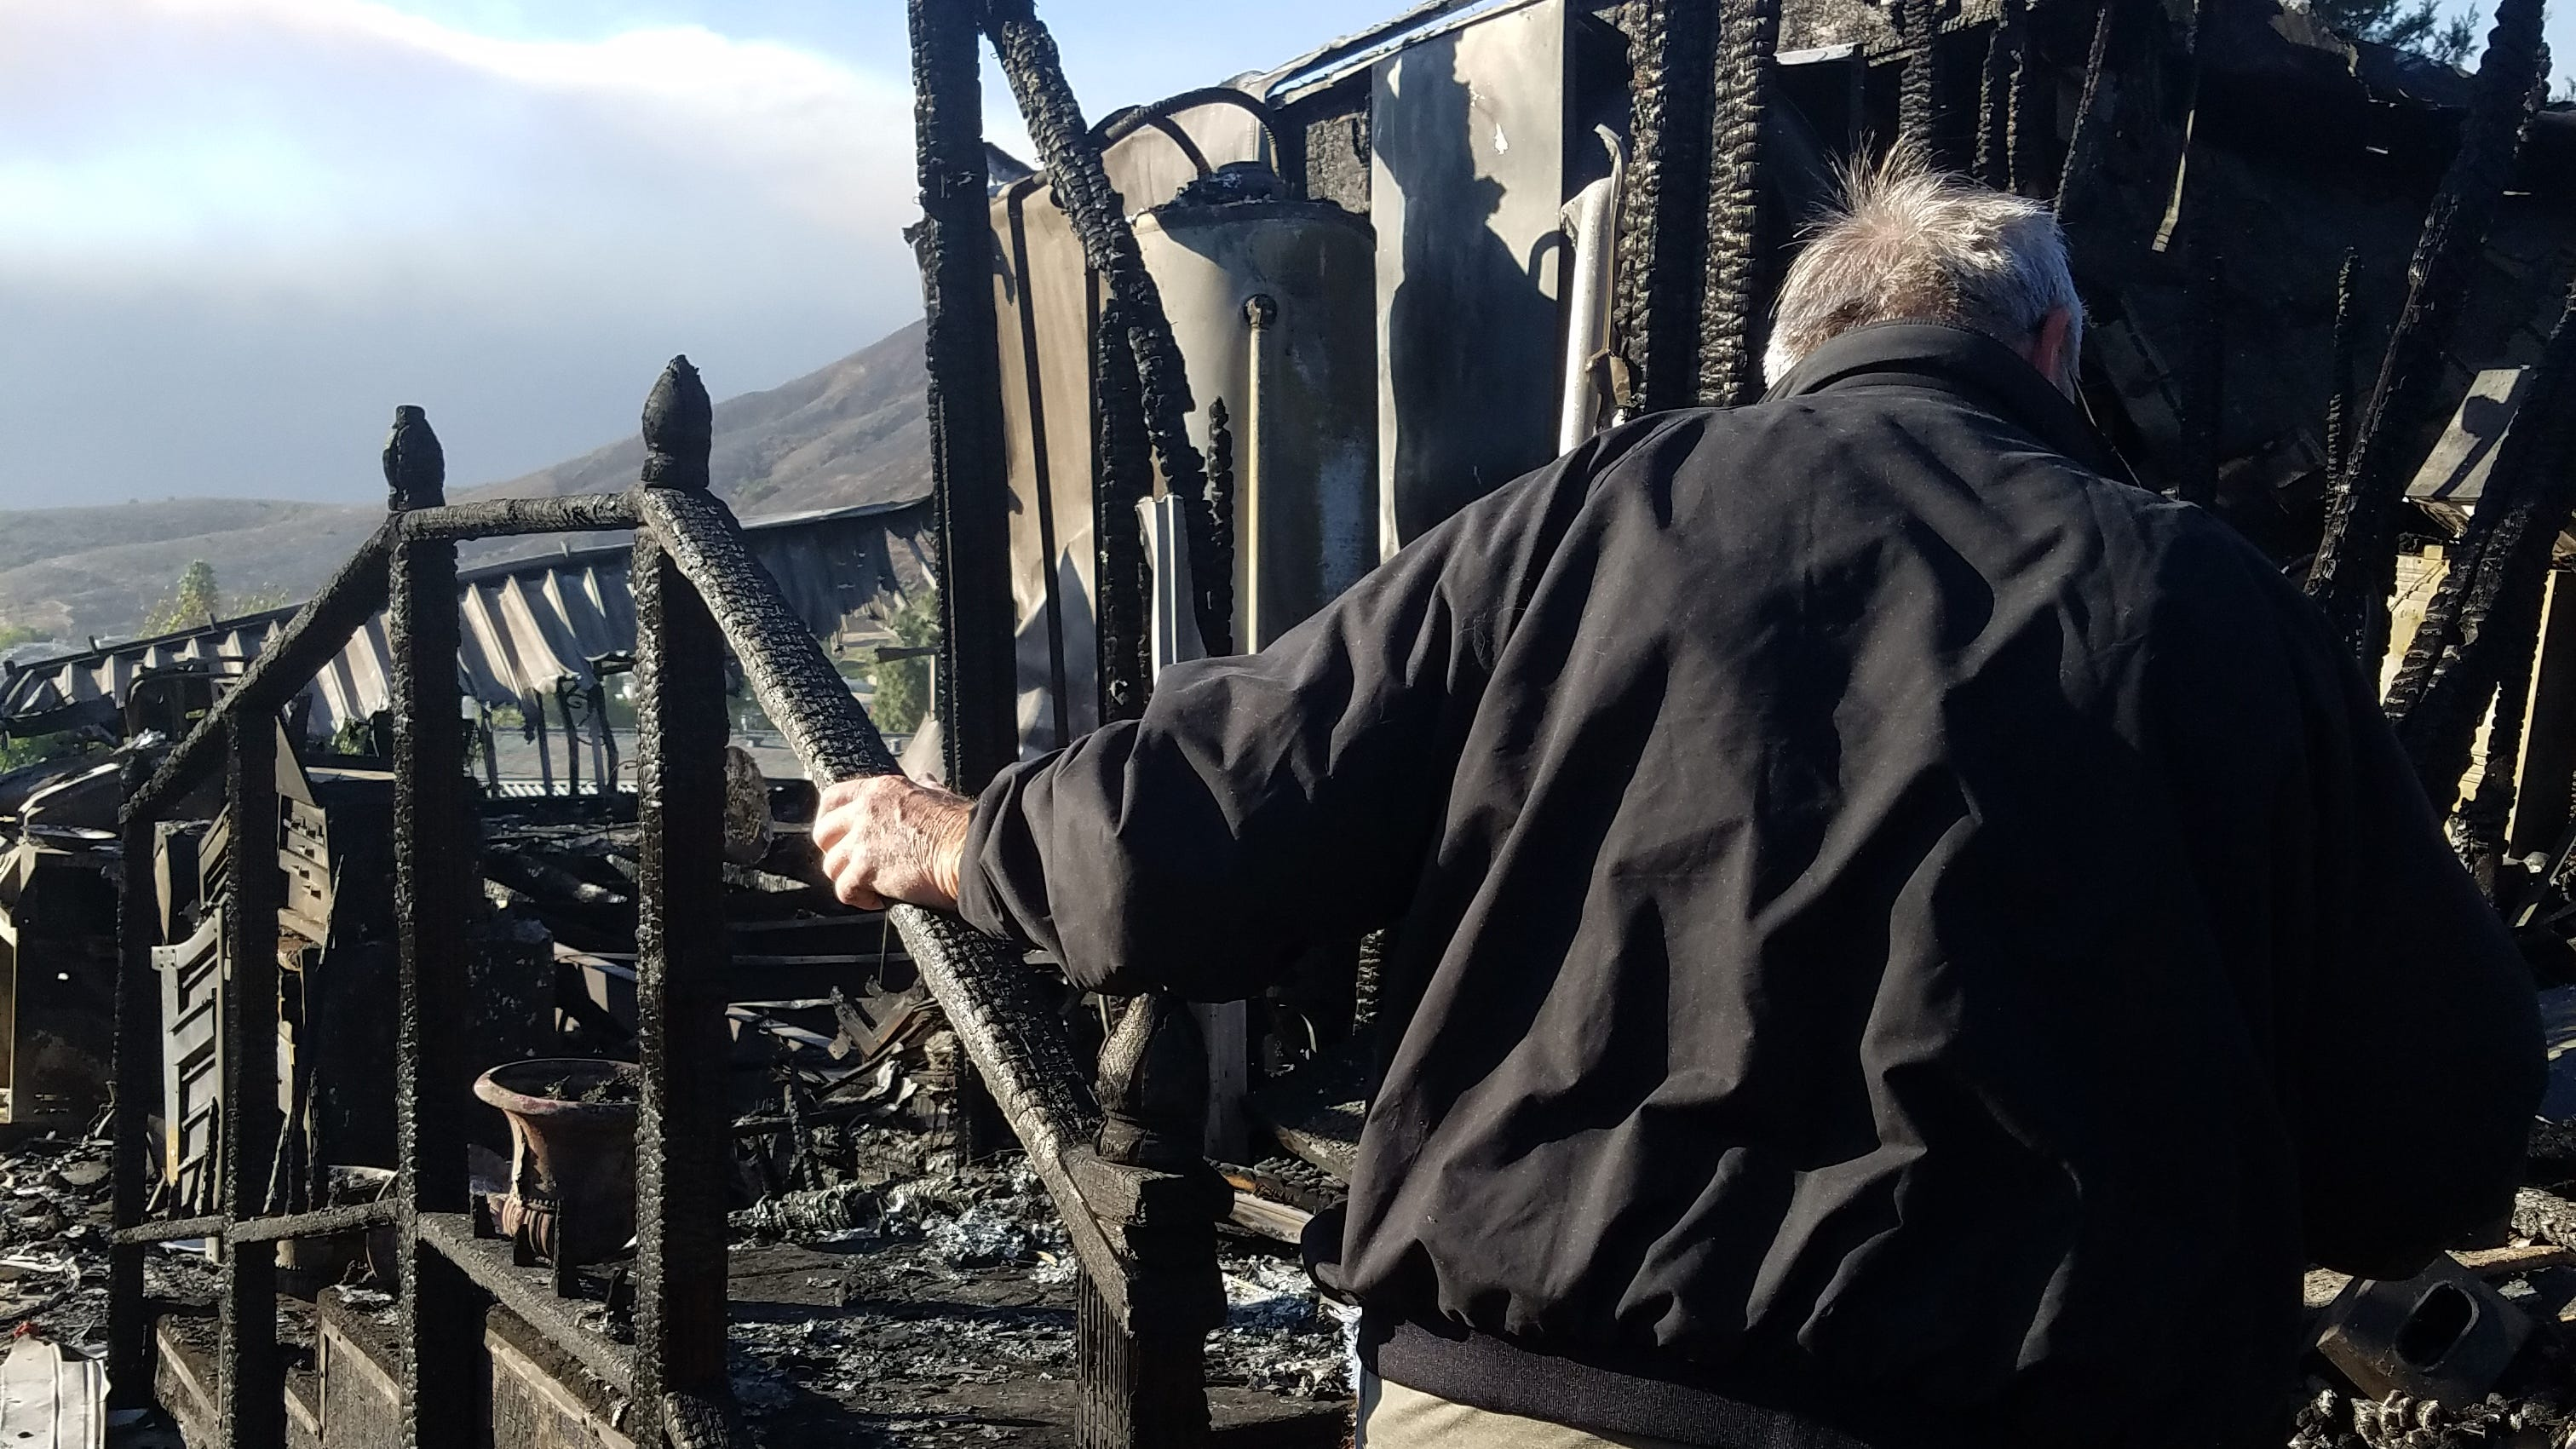 Patrick Futvoye lost his Newbury Park home in the Hill Fire a day before his and wife Dona's 50th wedding anniversary.